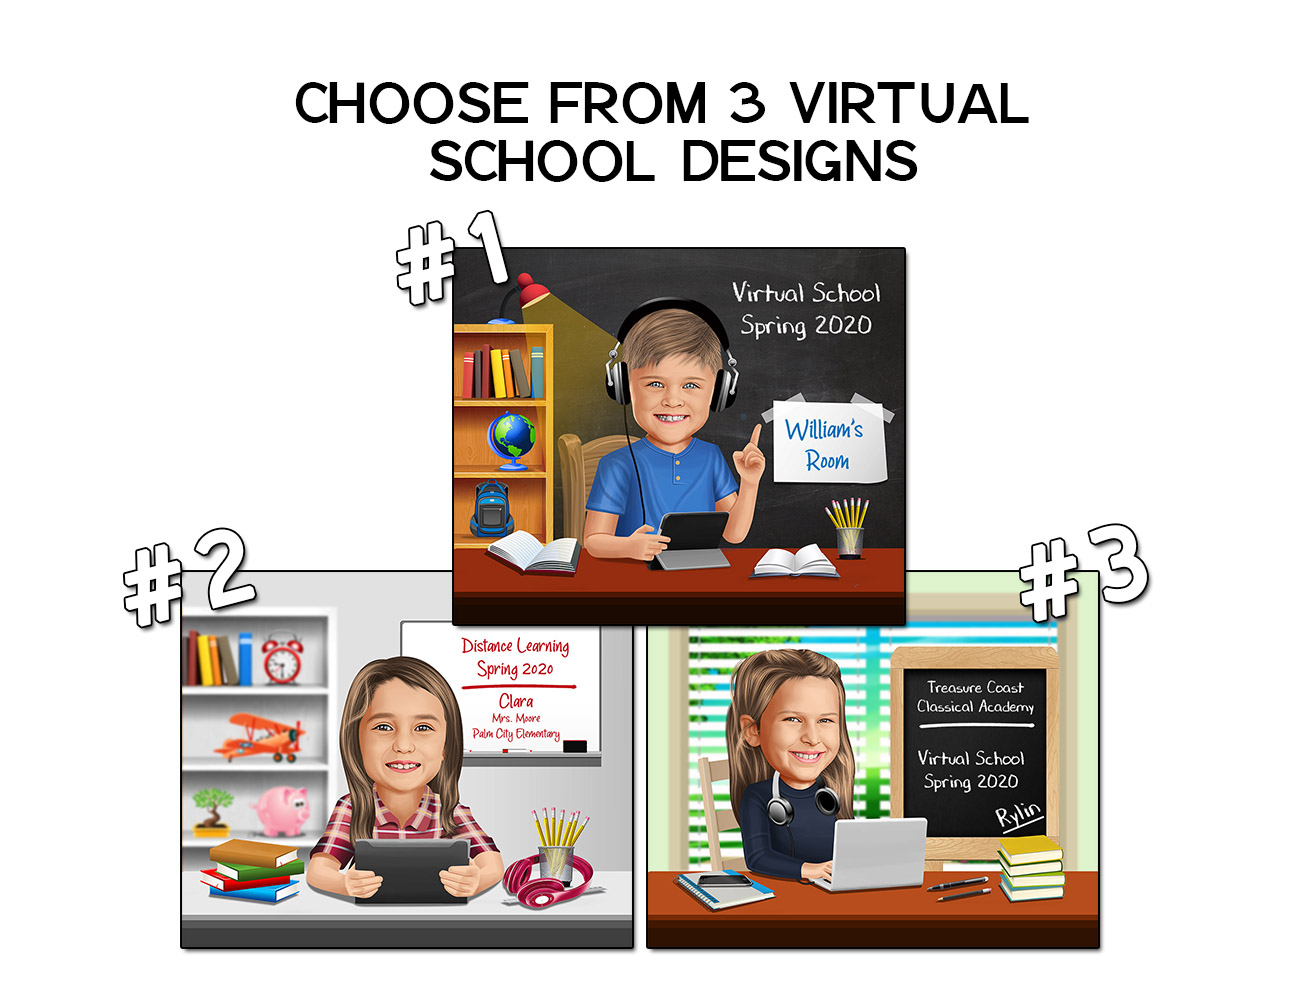 Order your Spring 2020 Virtual School Kidcature | 3_virtual_designs_choose.jpg